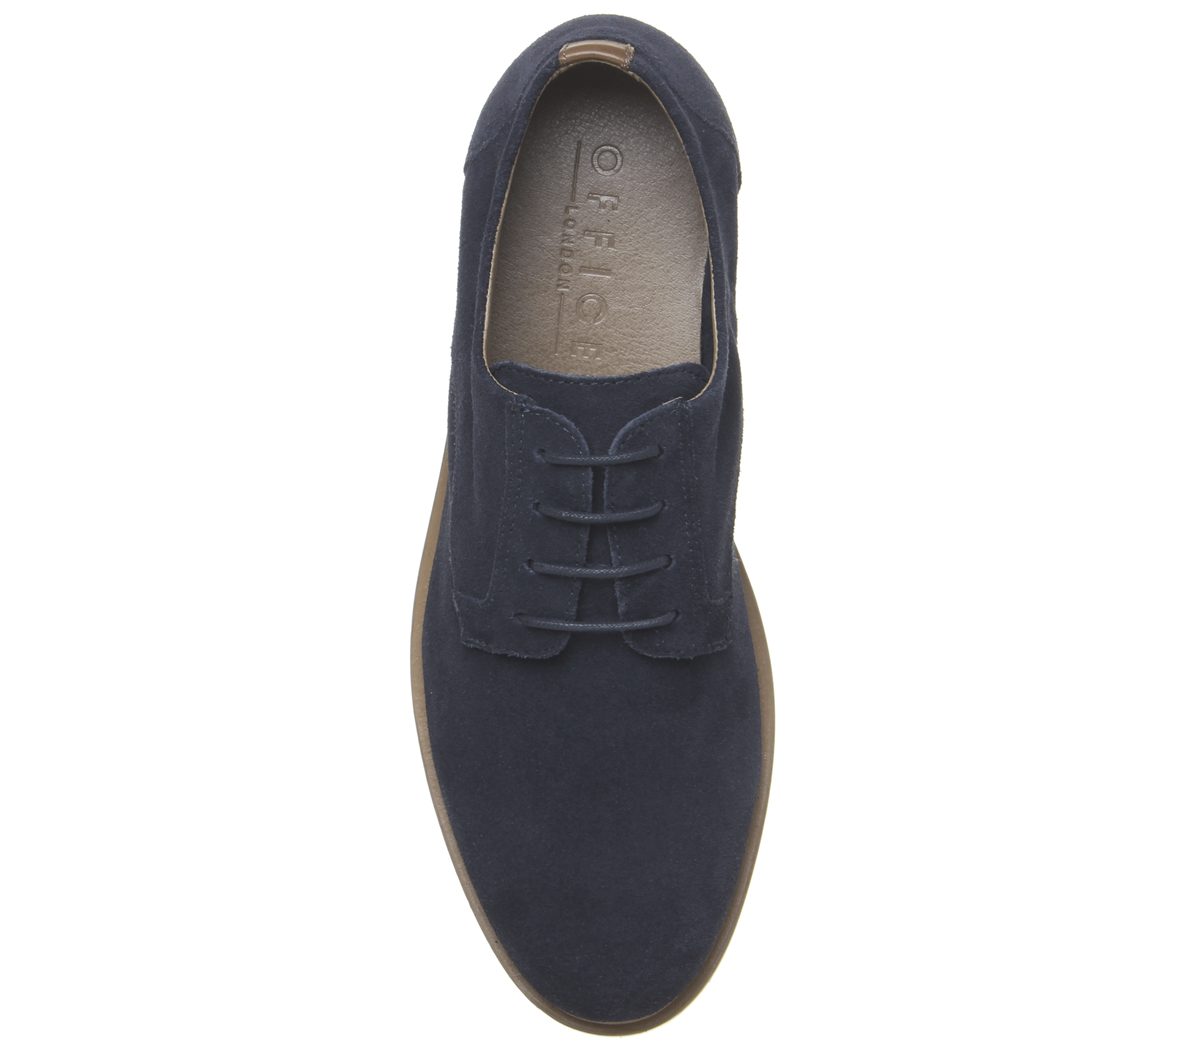 Mens-Office-Item-Derby-Shoes-Navy-Suede-Casual-Shoes thumbnail 9